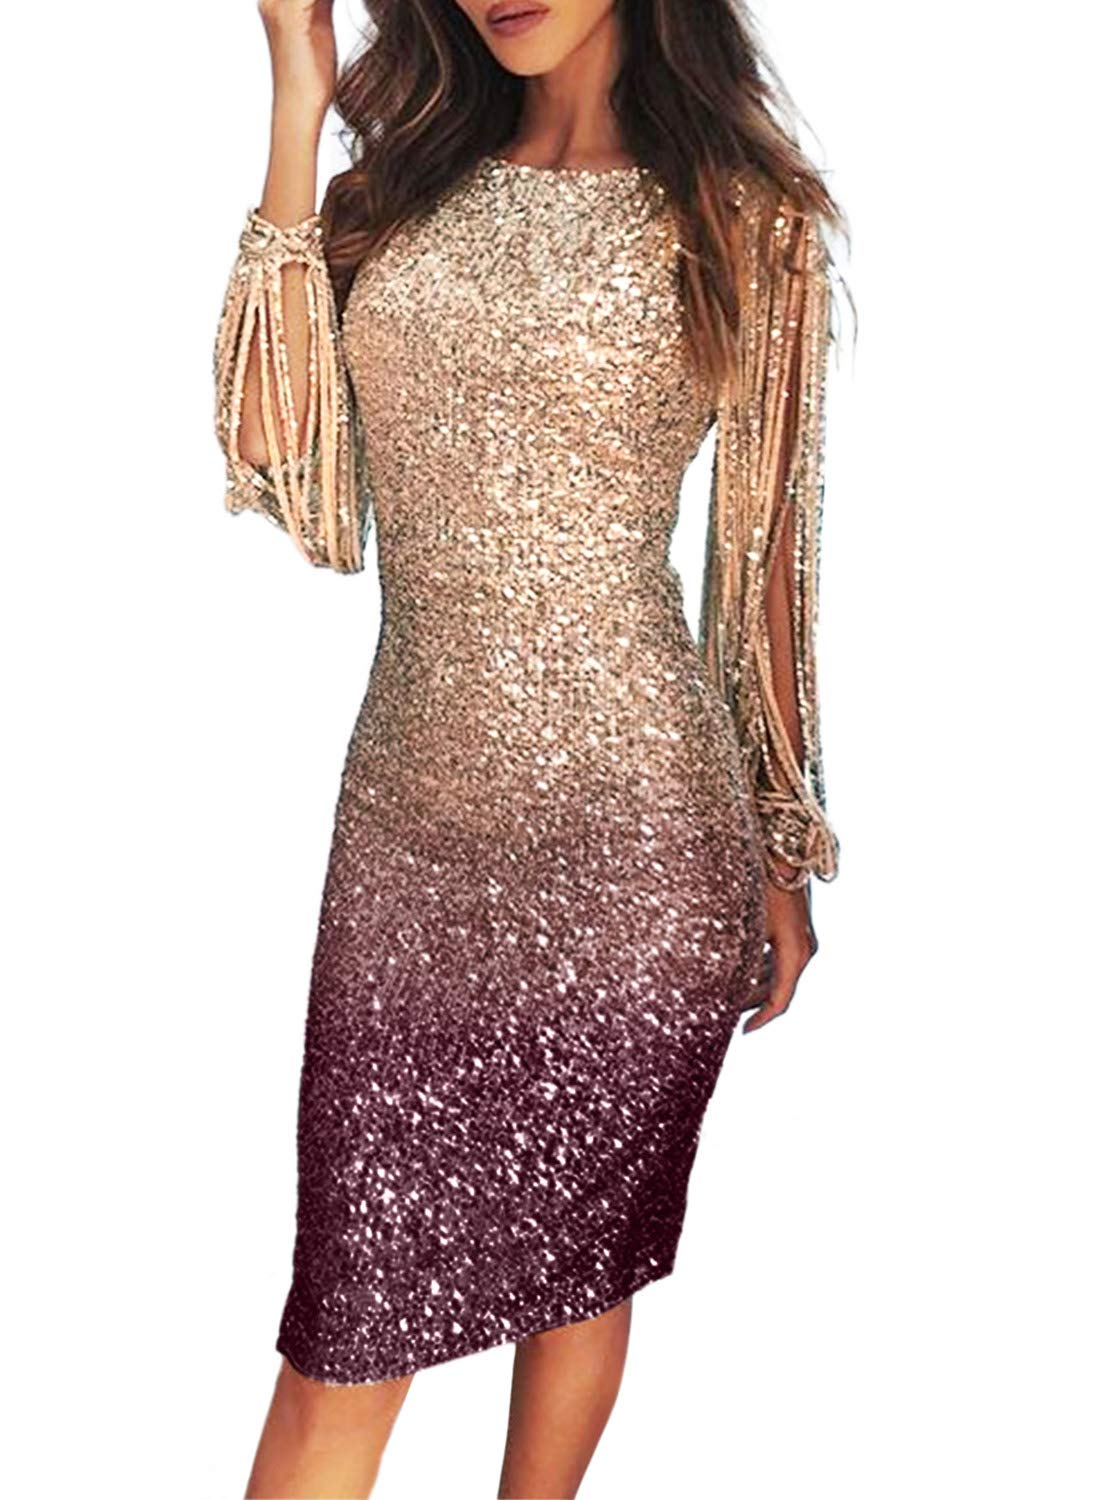 Lovezesent Womens Formal Sequin Prom Evening Party Dress Sexy Sheath Midi Cocktail Party Dresses for Ladies Apricot Purple Medium - wiihuu